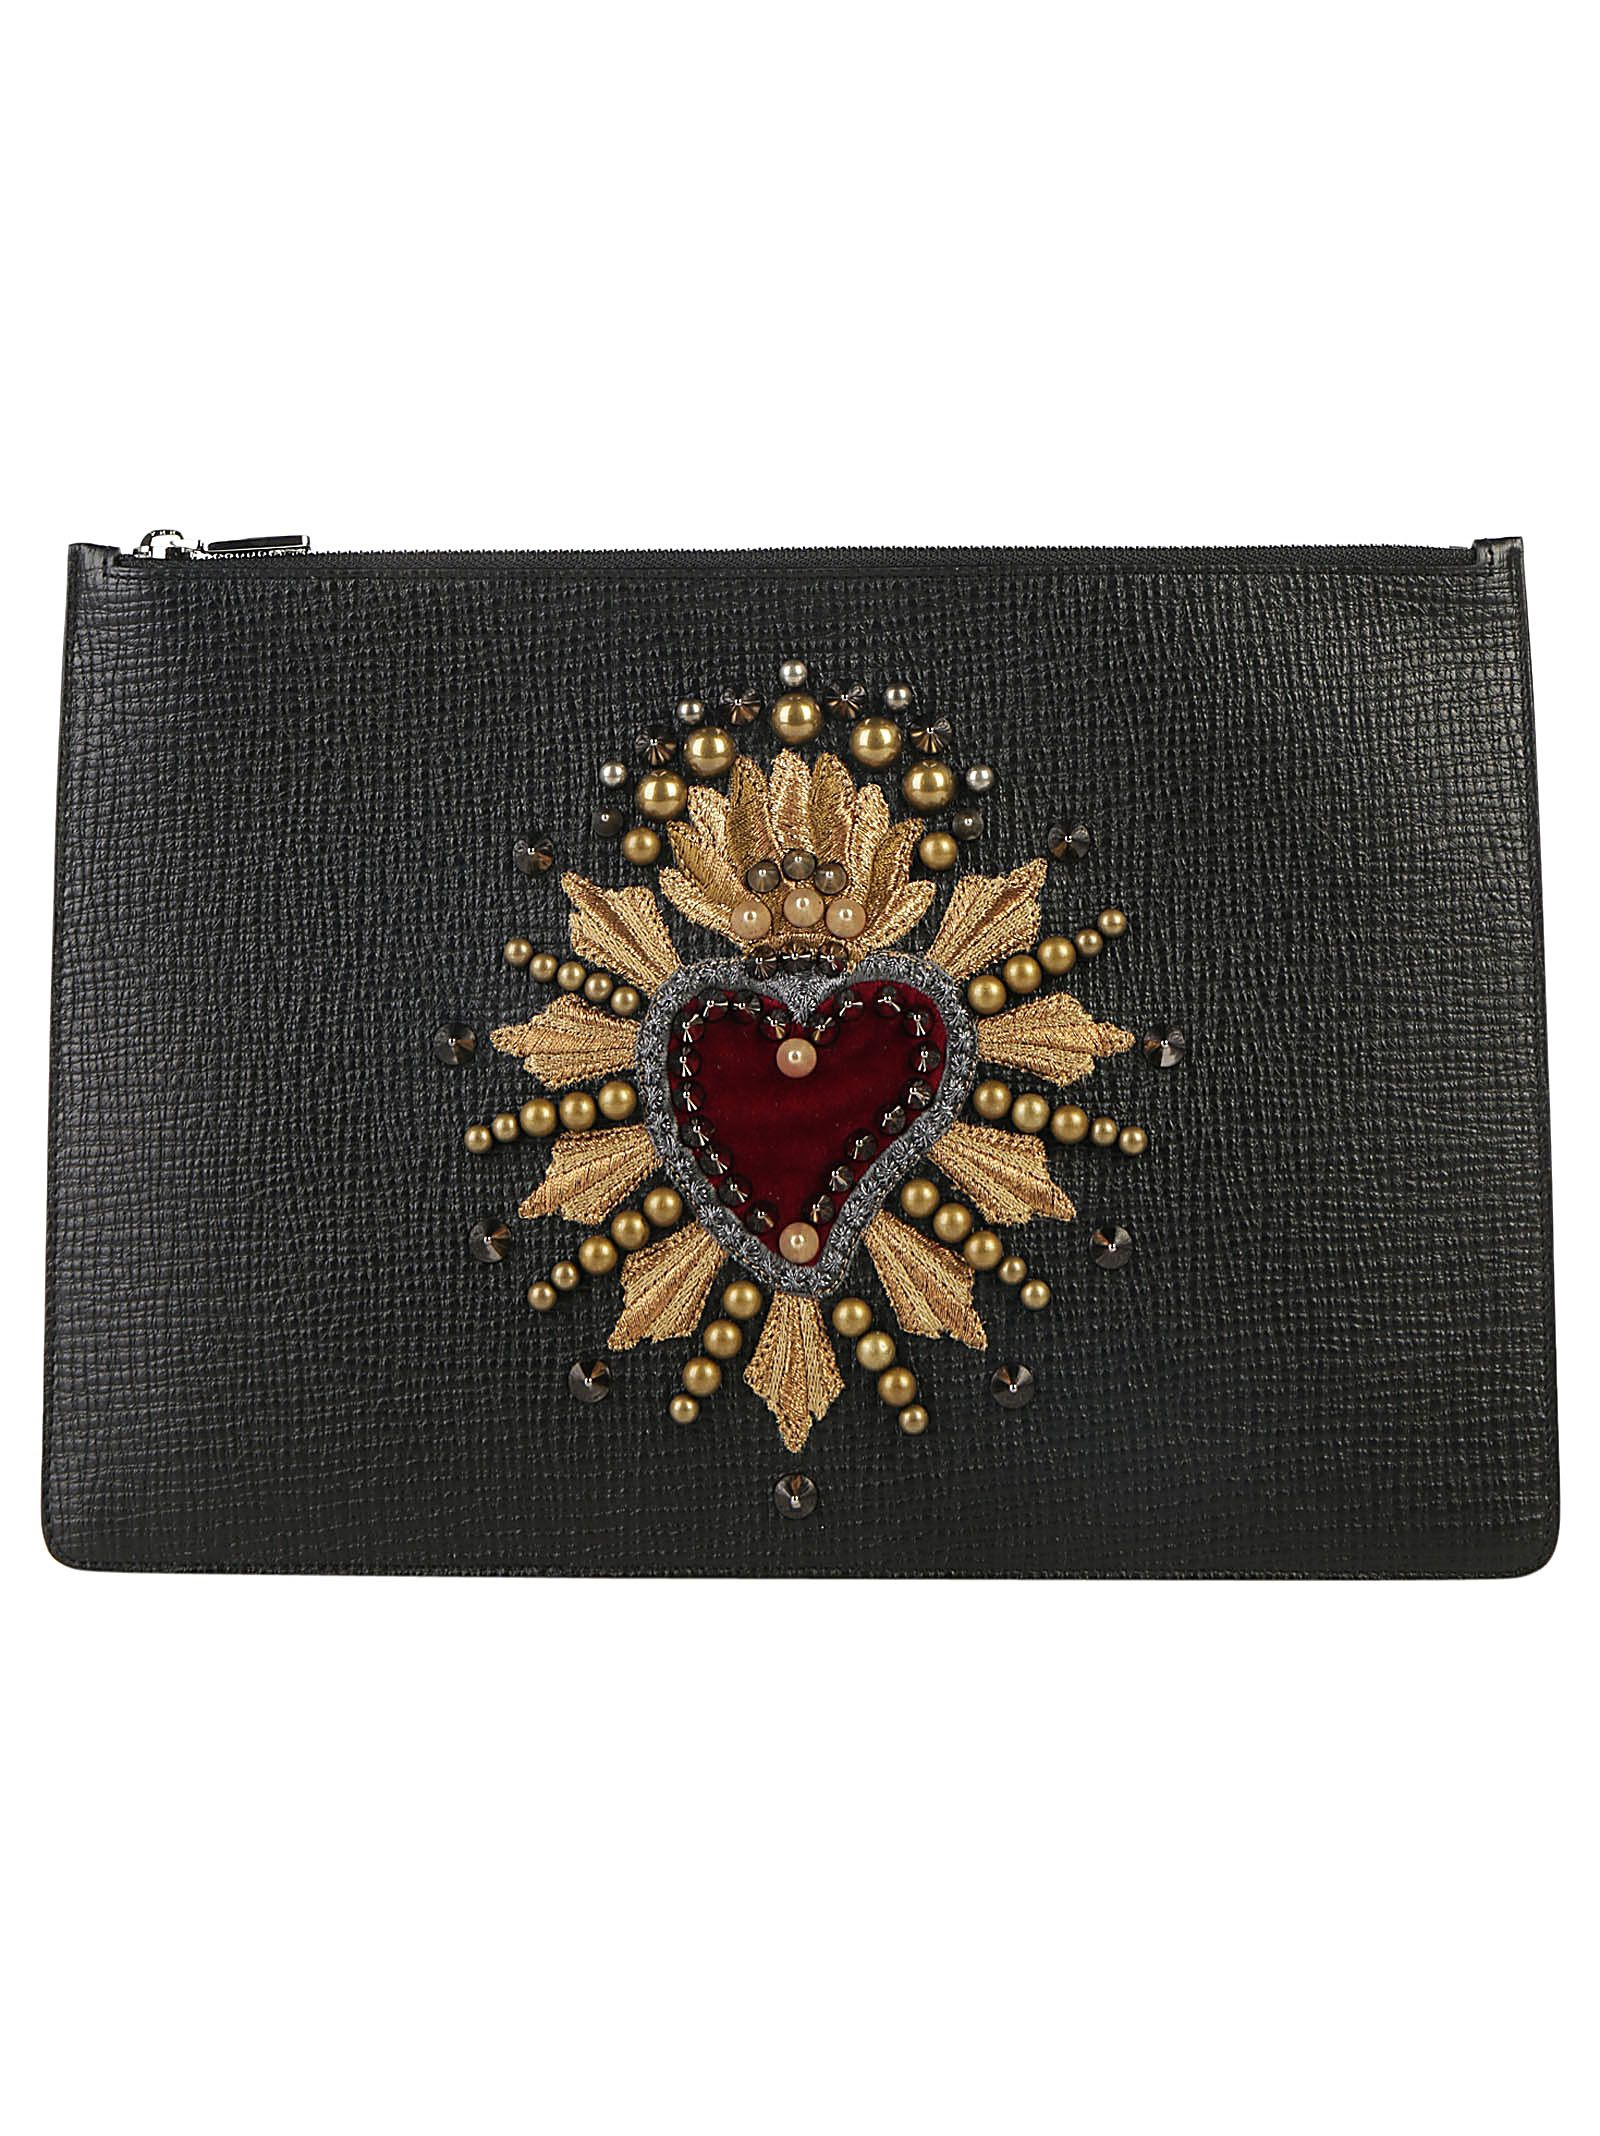 Amore document holder - Black Dolce & Gabbana Shopping Online High Quality 5tGxrny